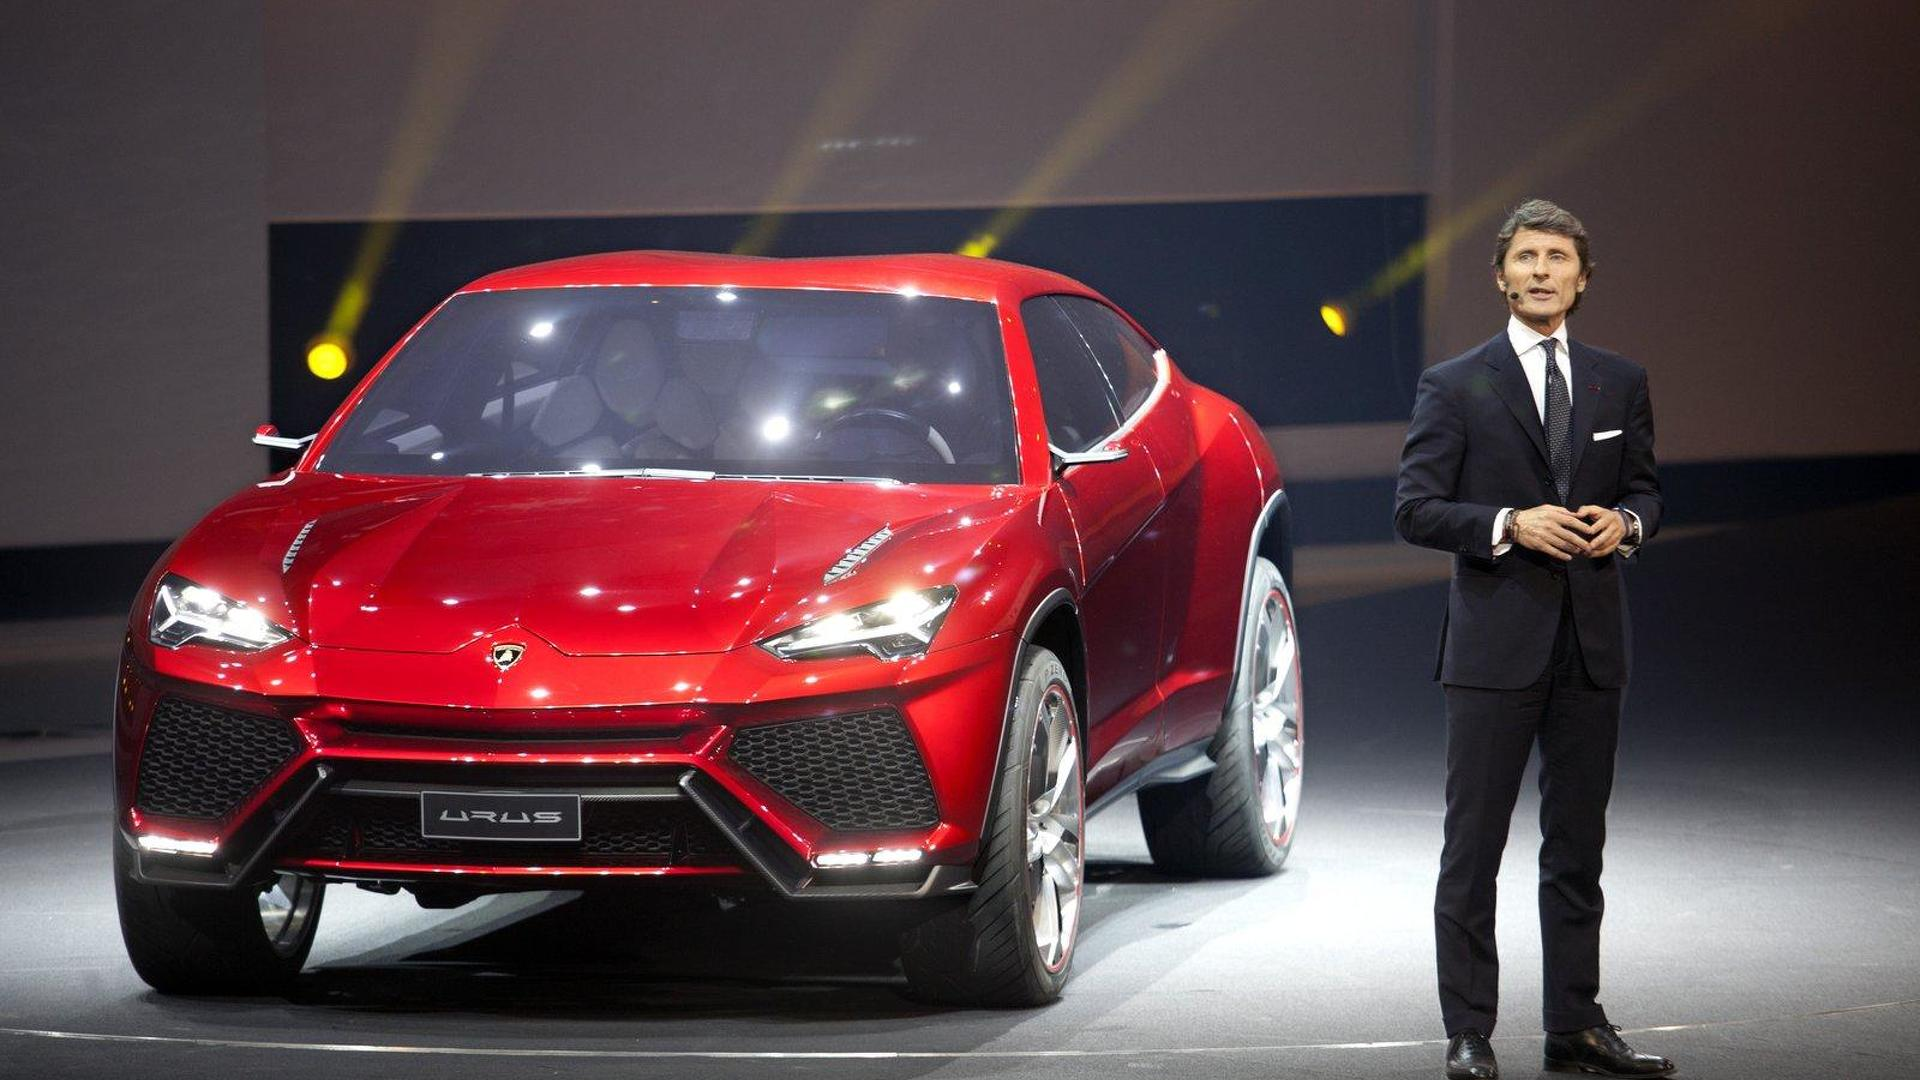 Report says Lamborghini Urus will be built in Italy after all, if approved for production